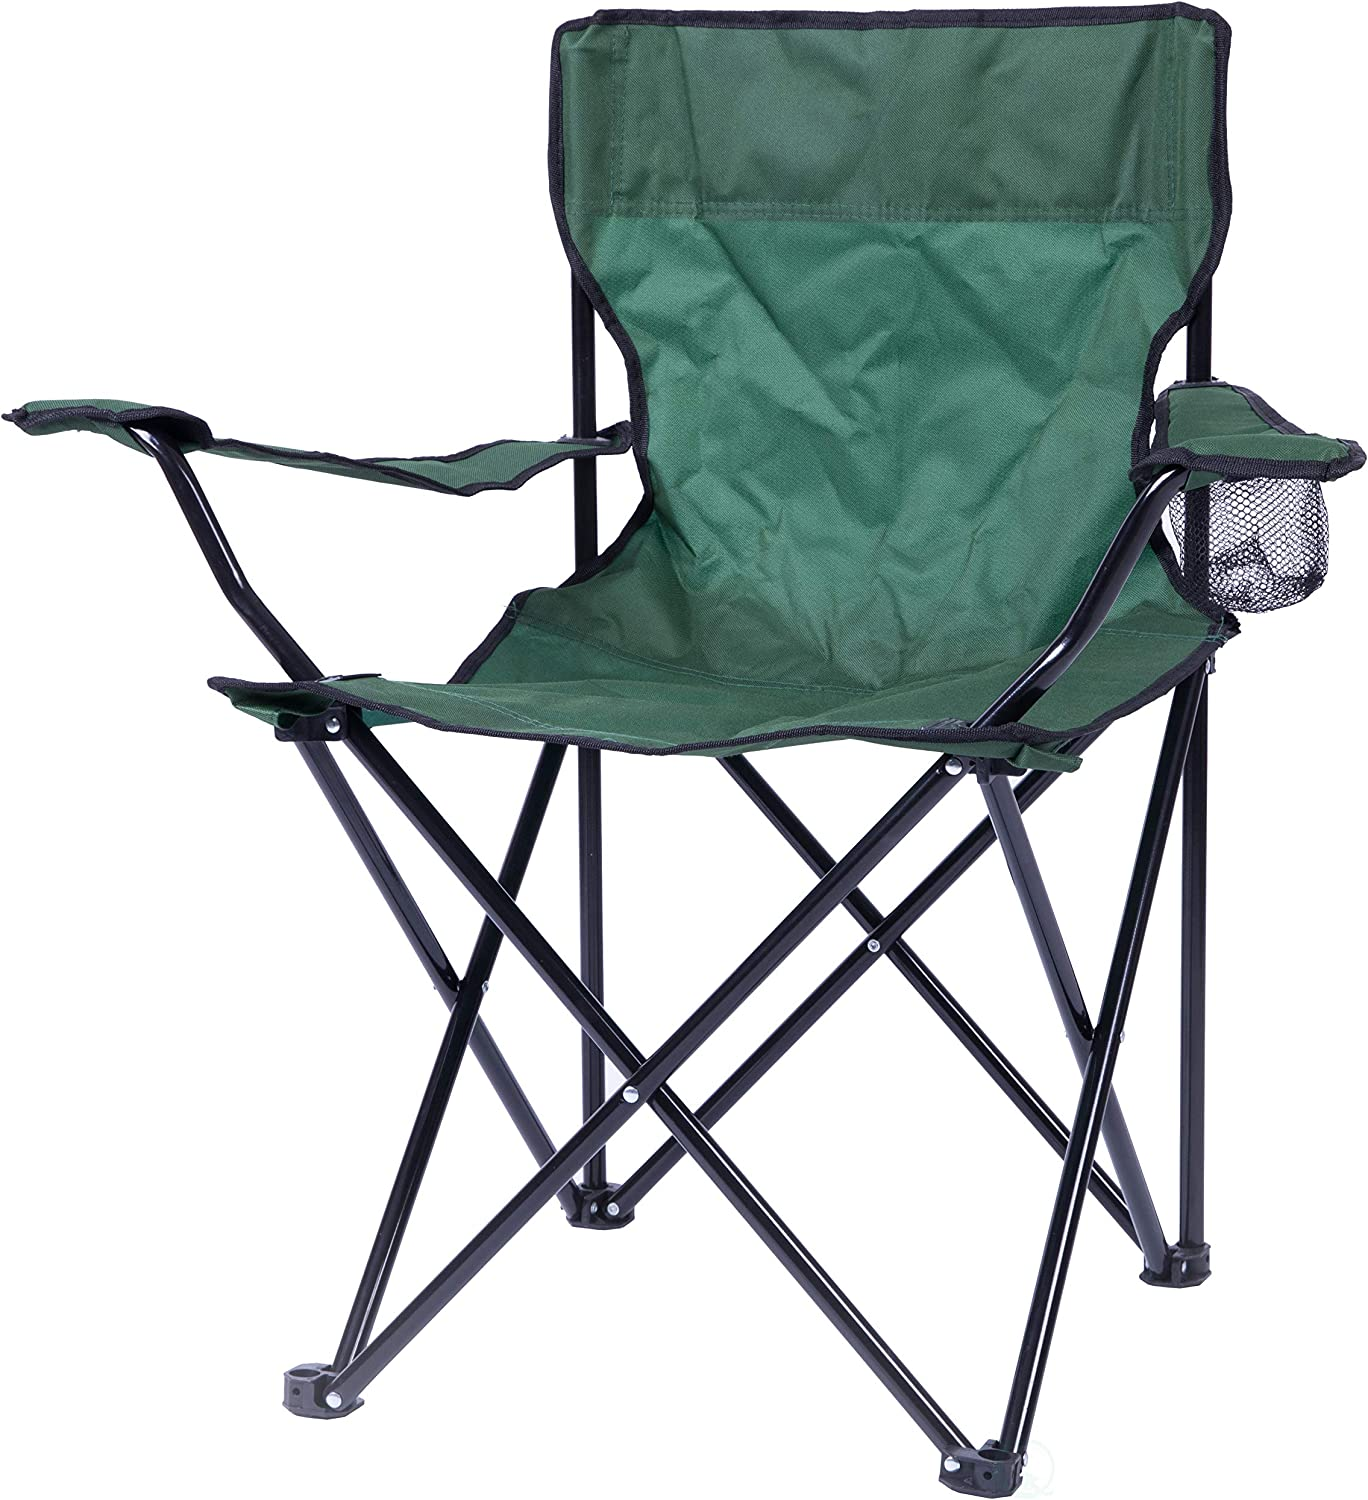 Green PLAYBERG Folding Camping Chair